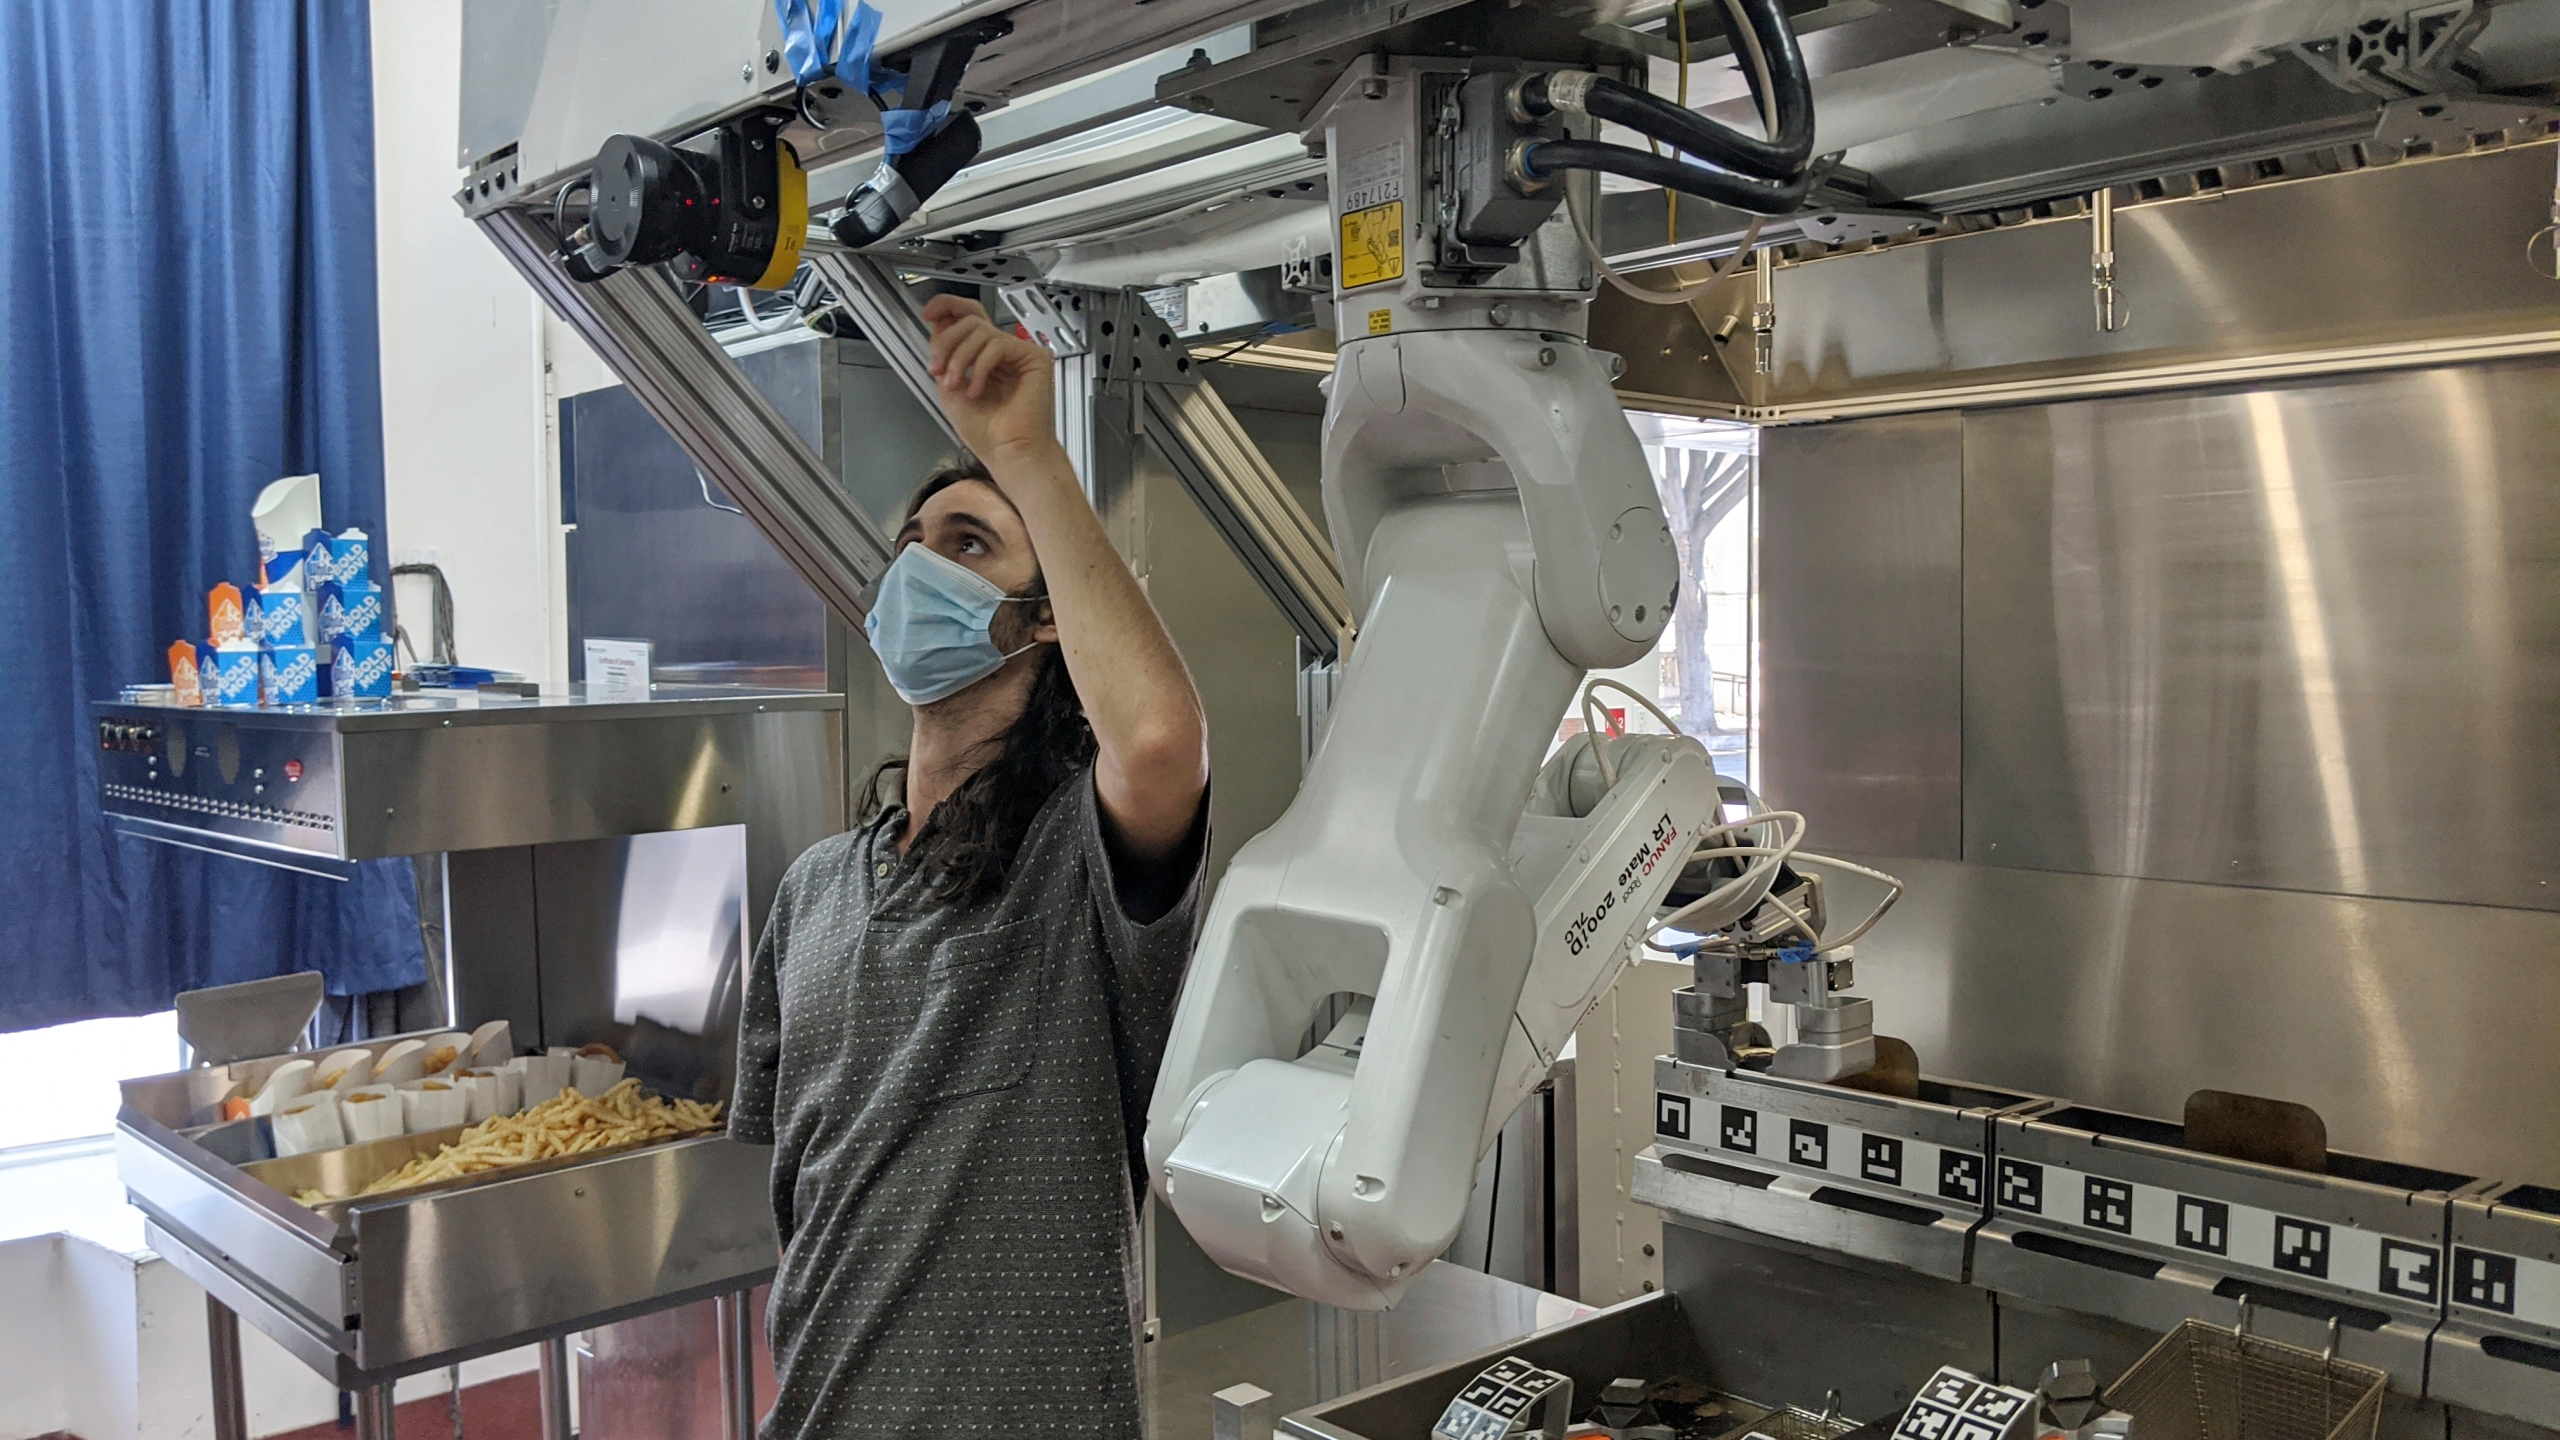 A technician makes an adjustment to a robot at Miso Robotics' White Castle test kitchen in Pasadena on July 9, 2020. (Miso Robotics via AP)